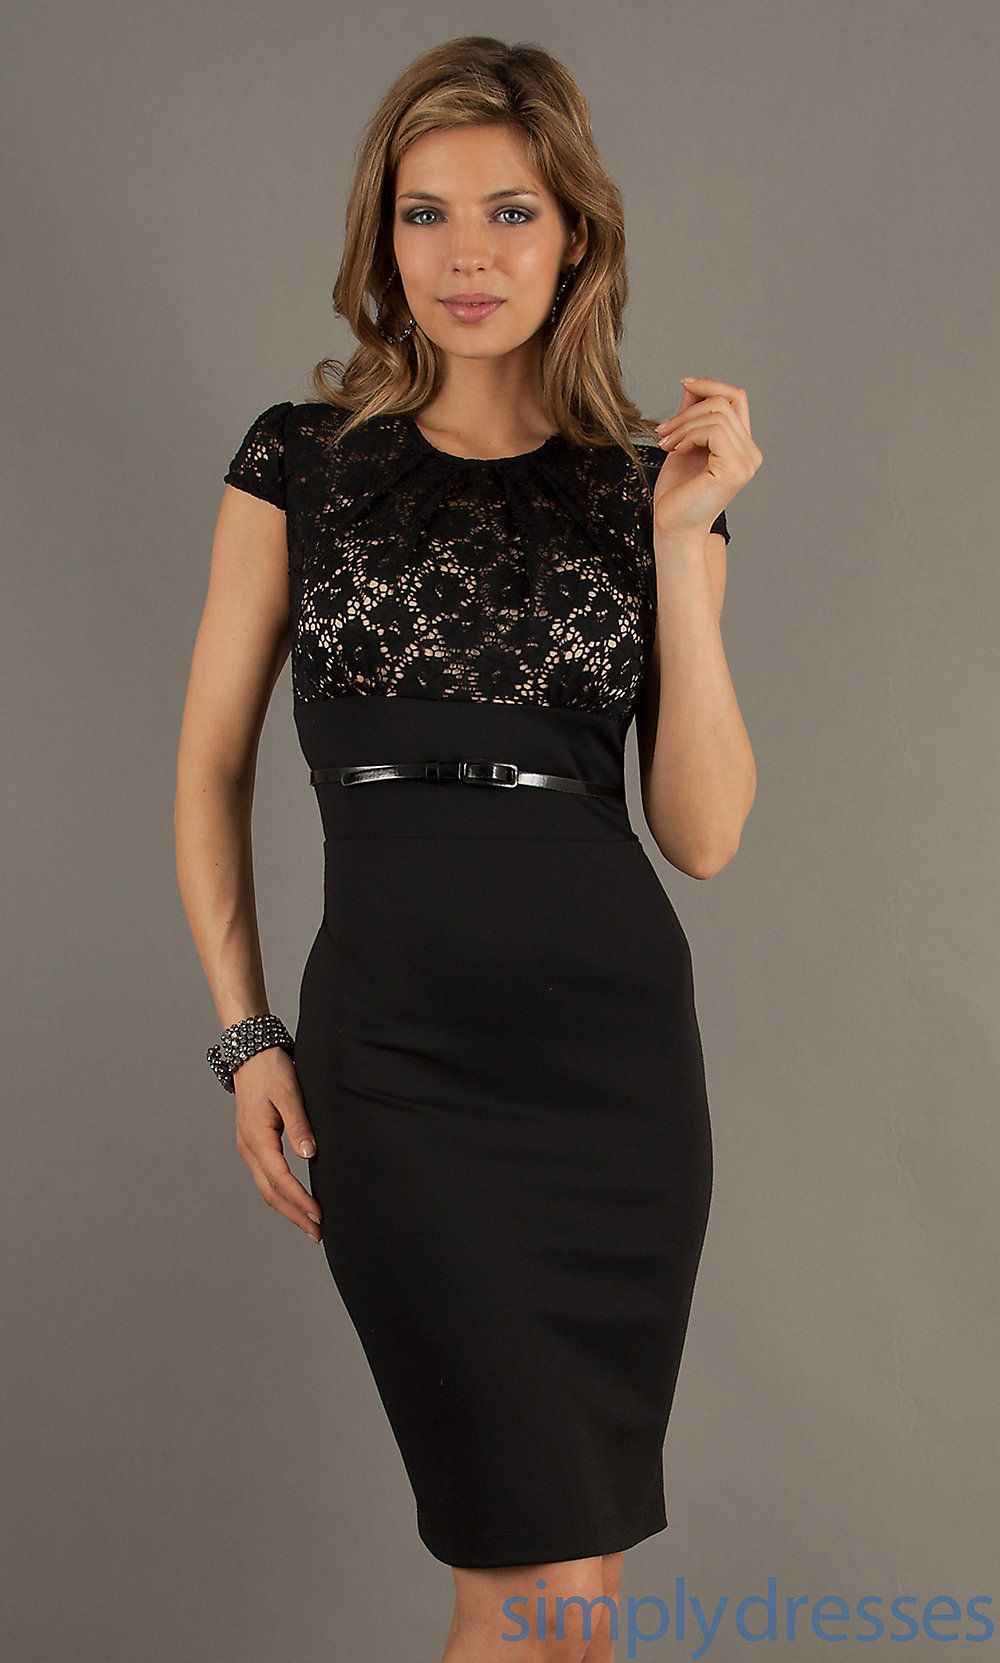 Dress short fitted lace embellished dress simply dresses style